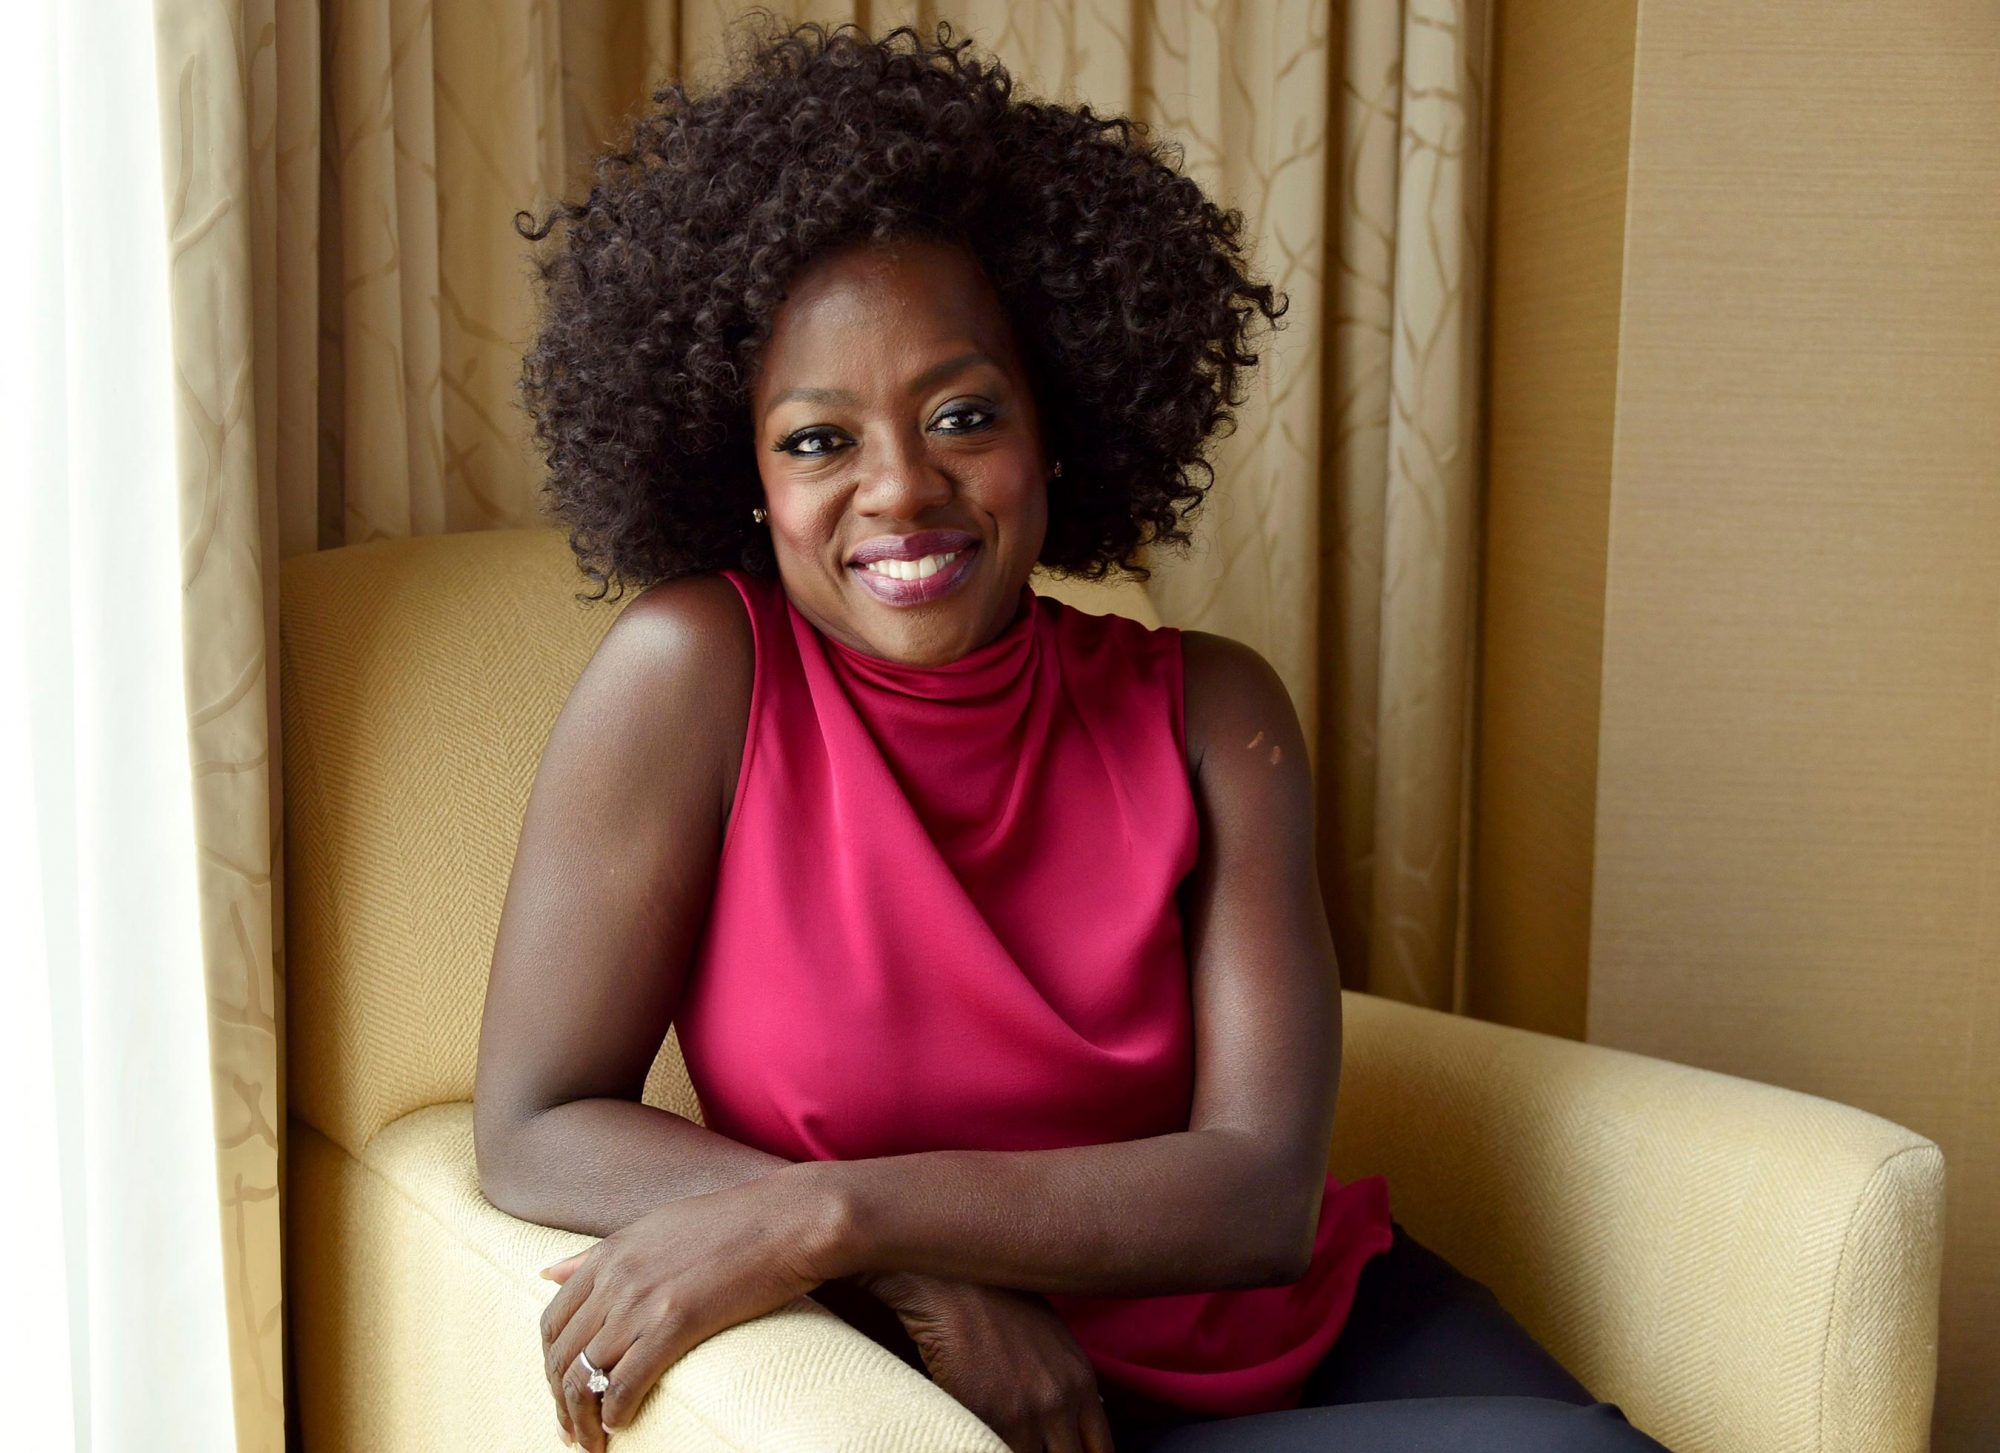 2018 TIFF - Viola Davis Portrait Session, Toronto, Canada - 09 Sep 2018